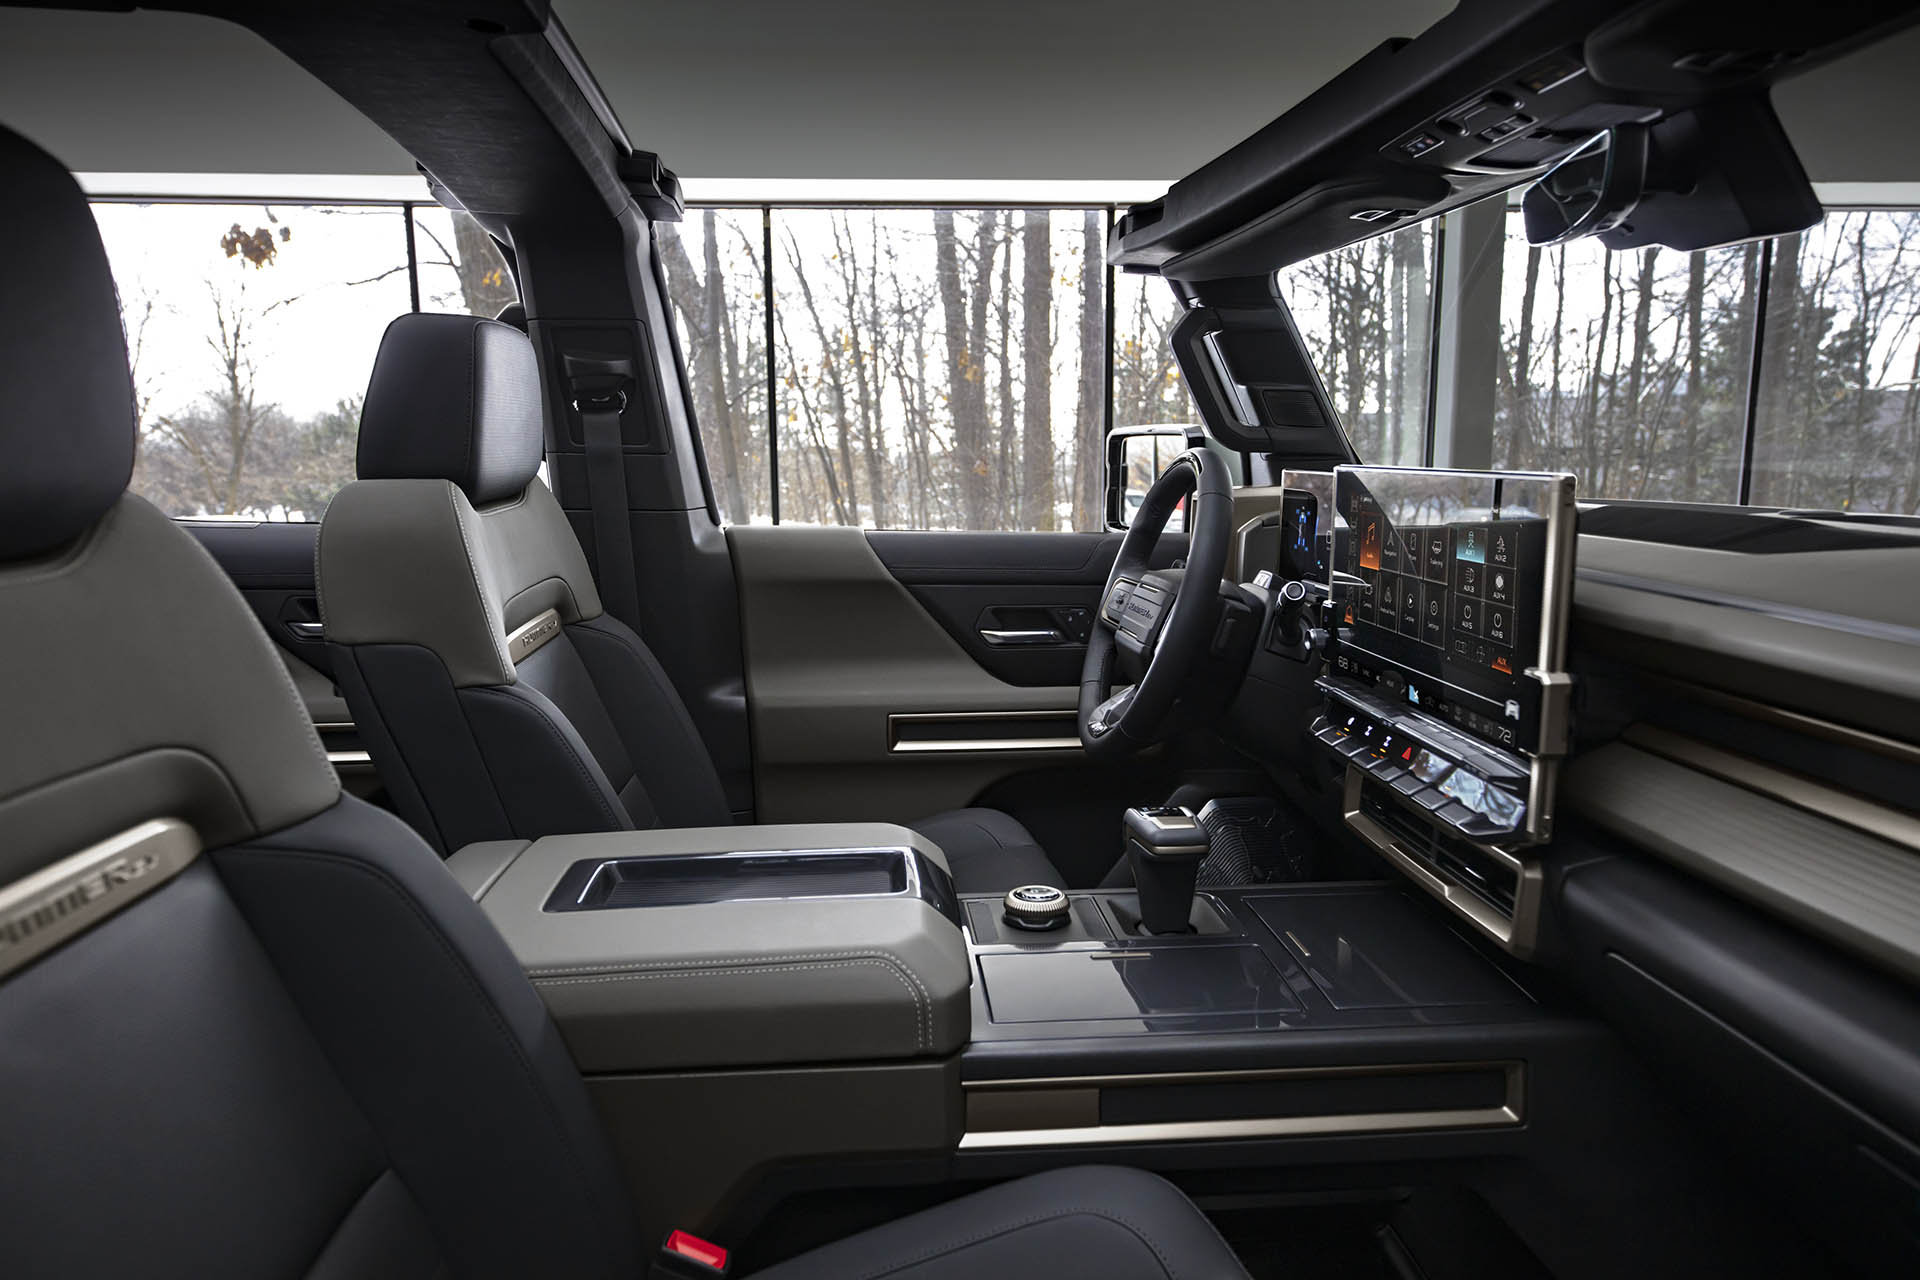 The GMC HUMMER EV SUV debuts in the low-contrast Lunar Shadow in